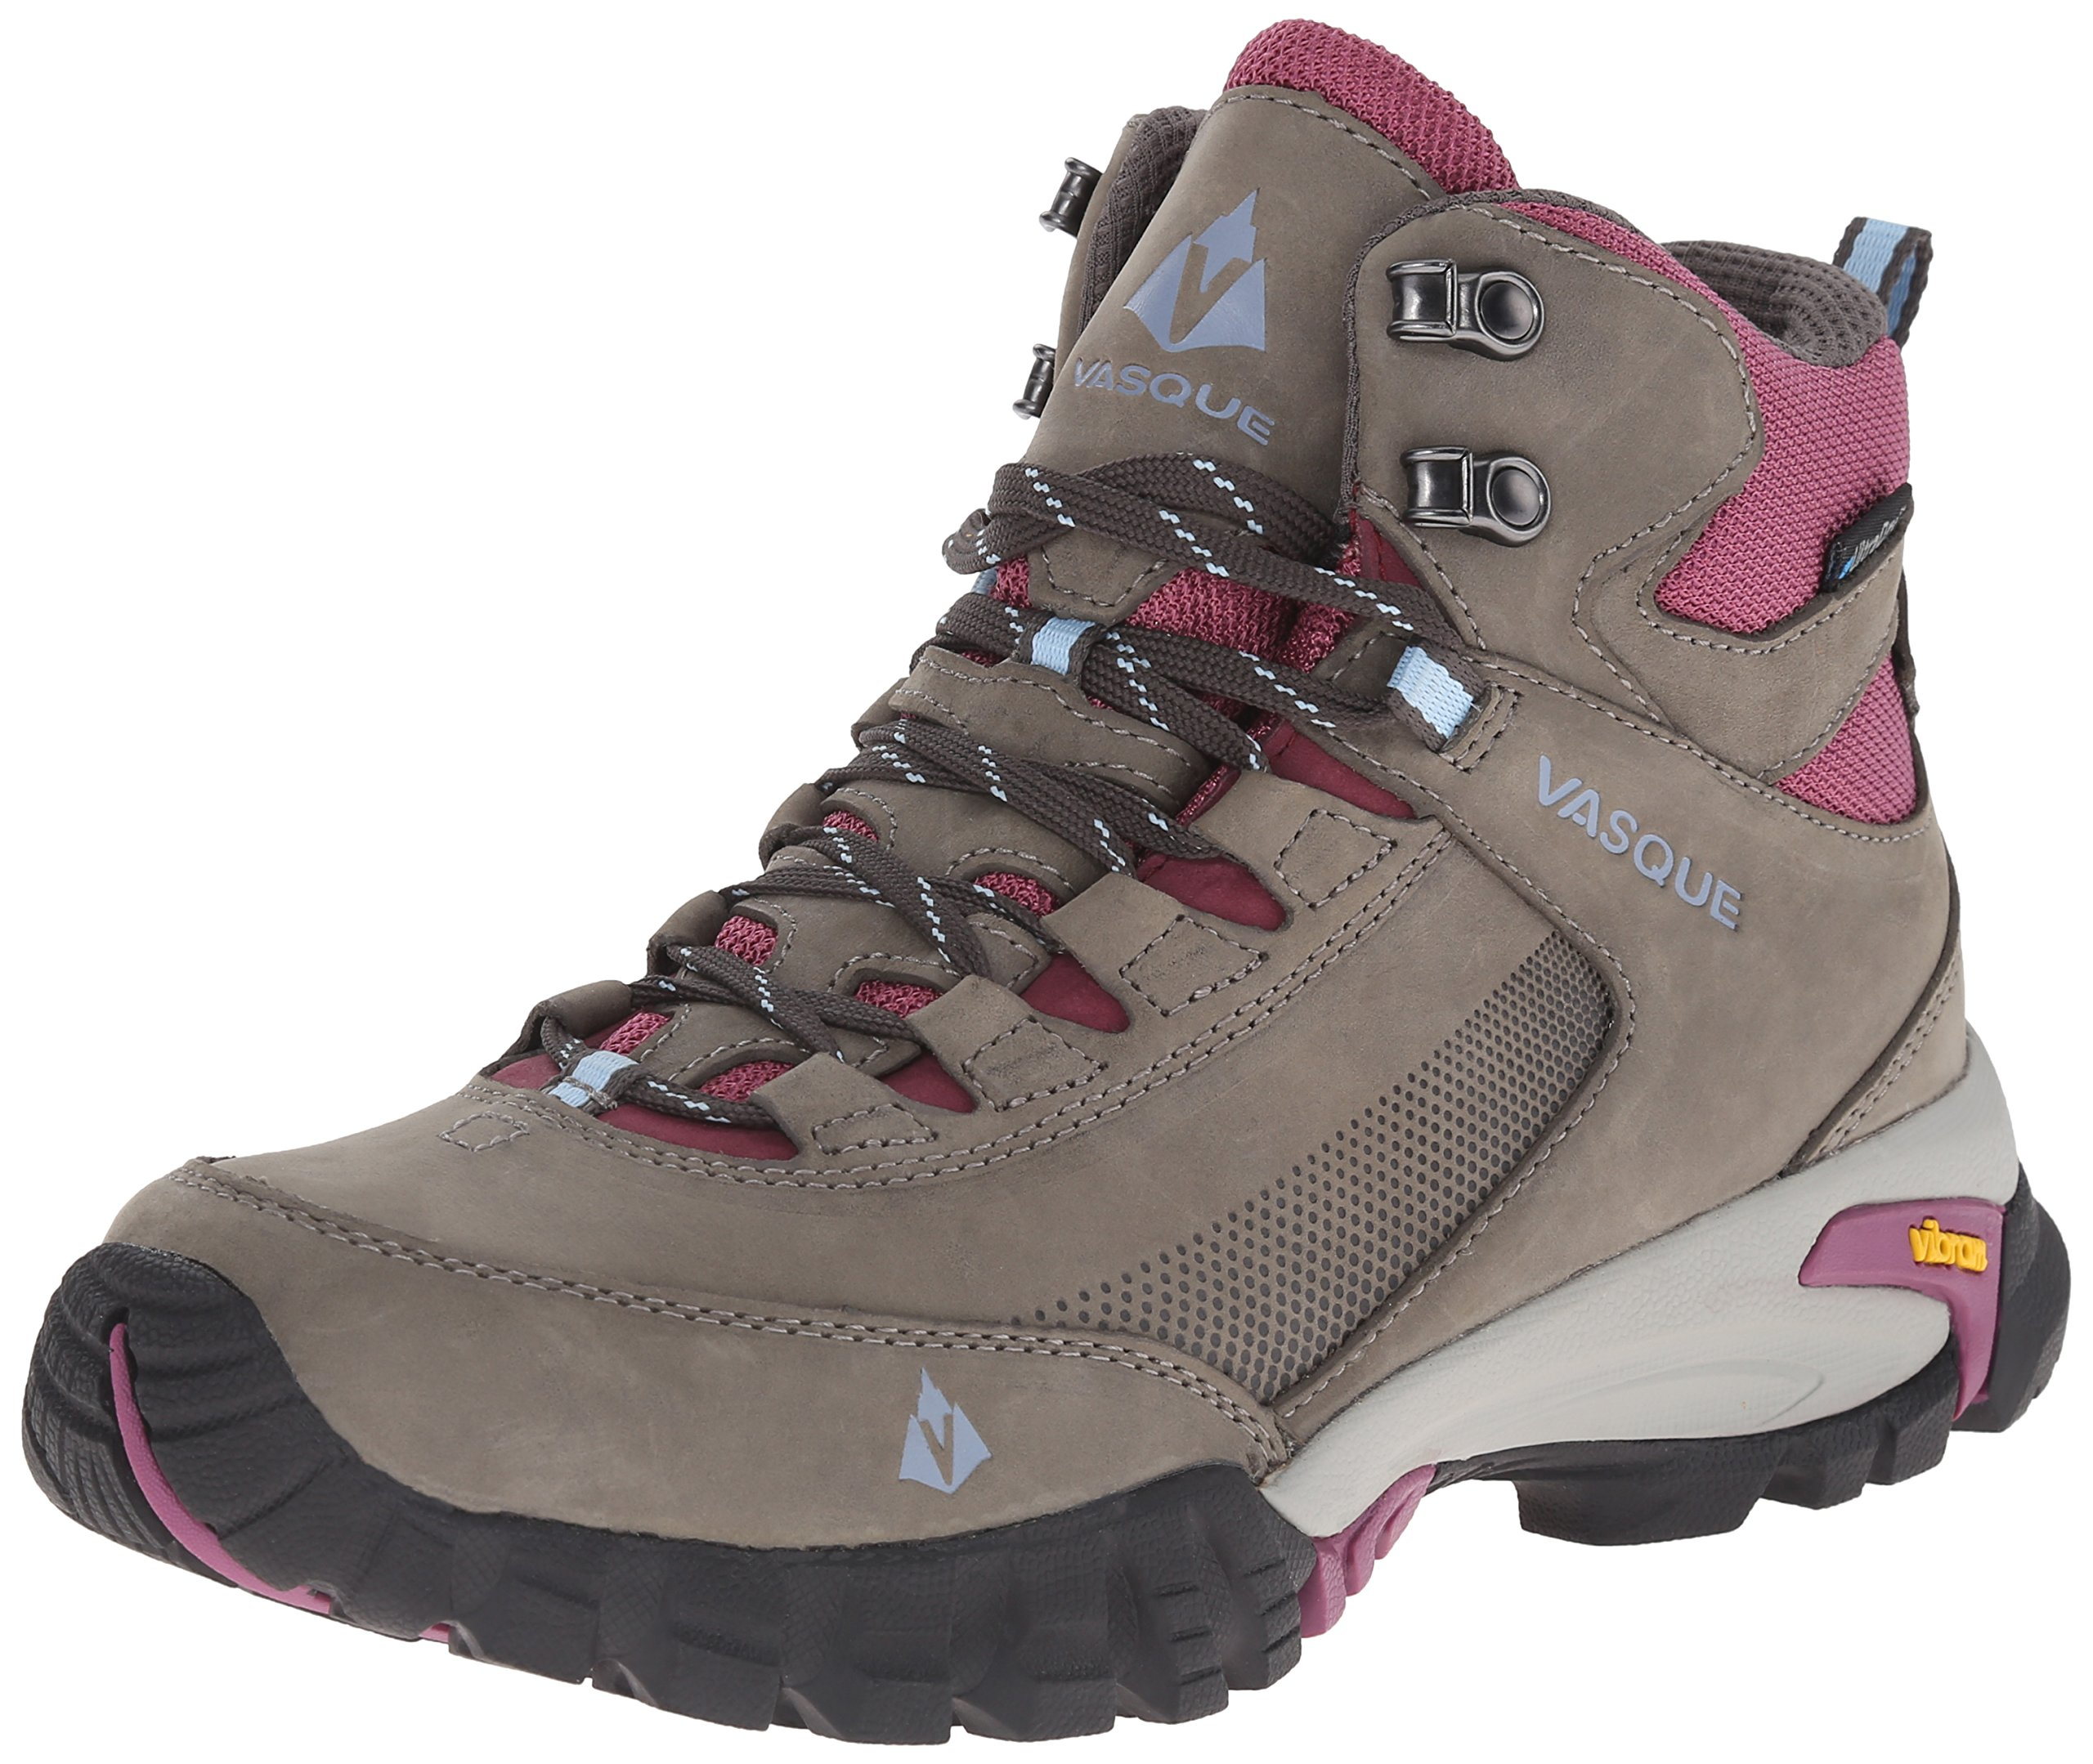 Vasque Women's Talus Trek UltraDry Hiking Boot, Gargoyle/Damson, 7.5 W US by Vasque